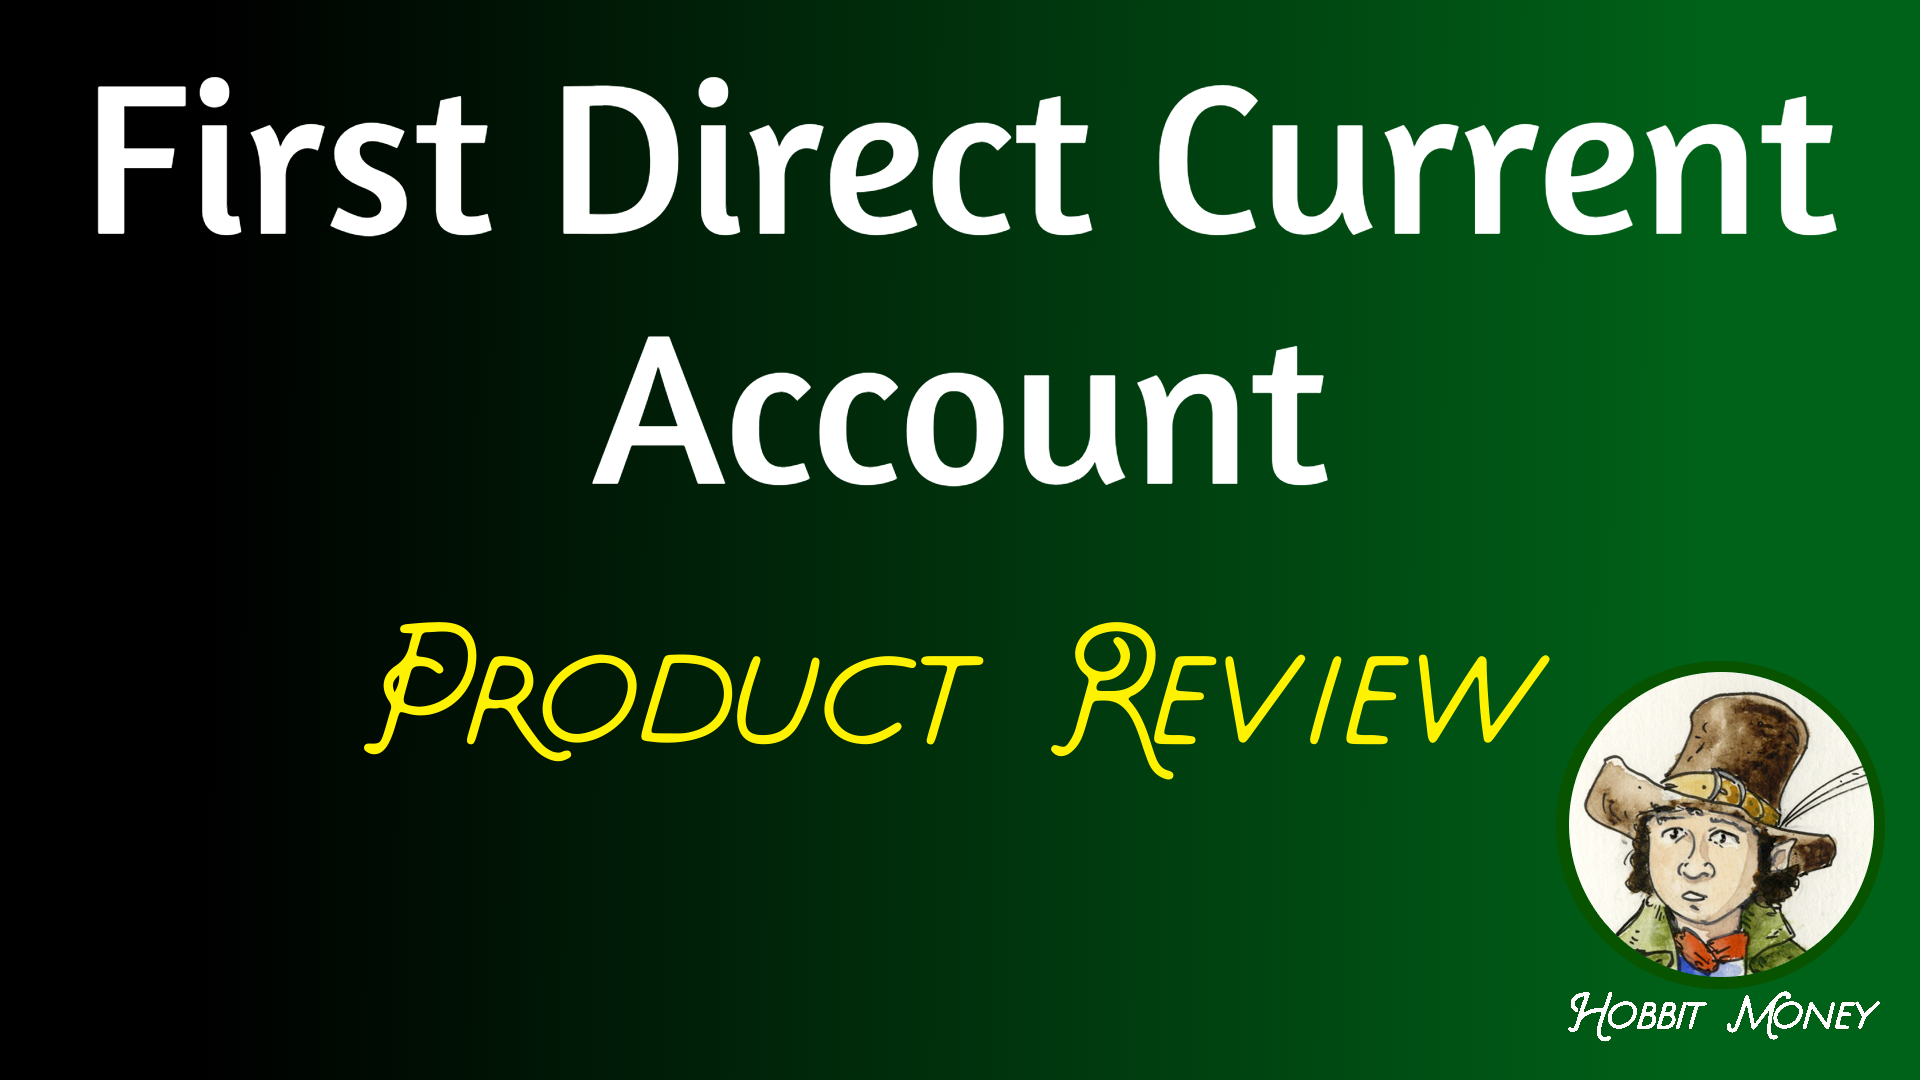 First Direct Current Account Product Review - Hobbit Money